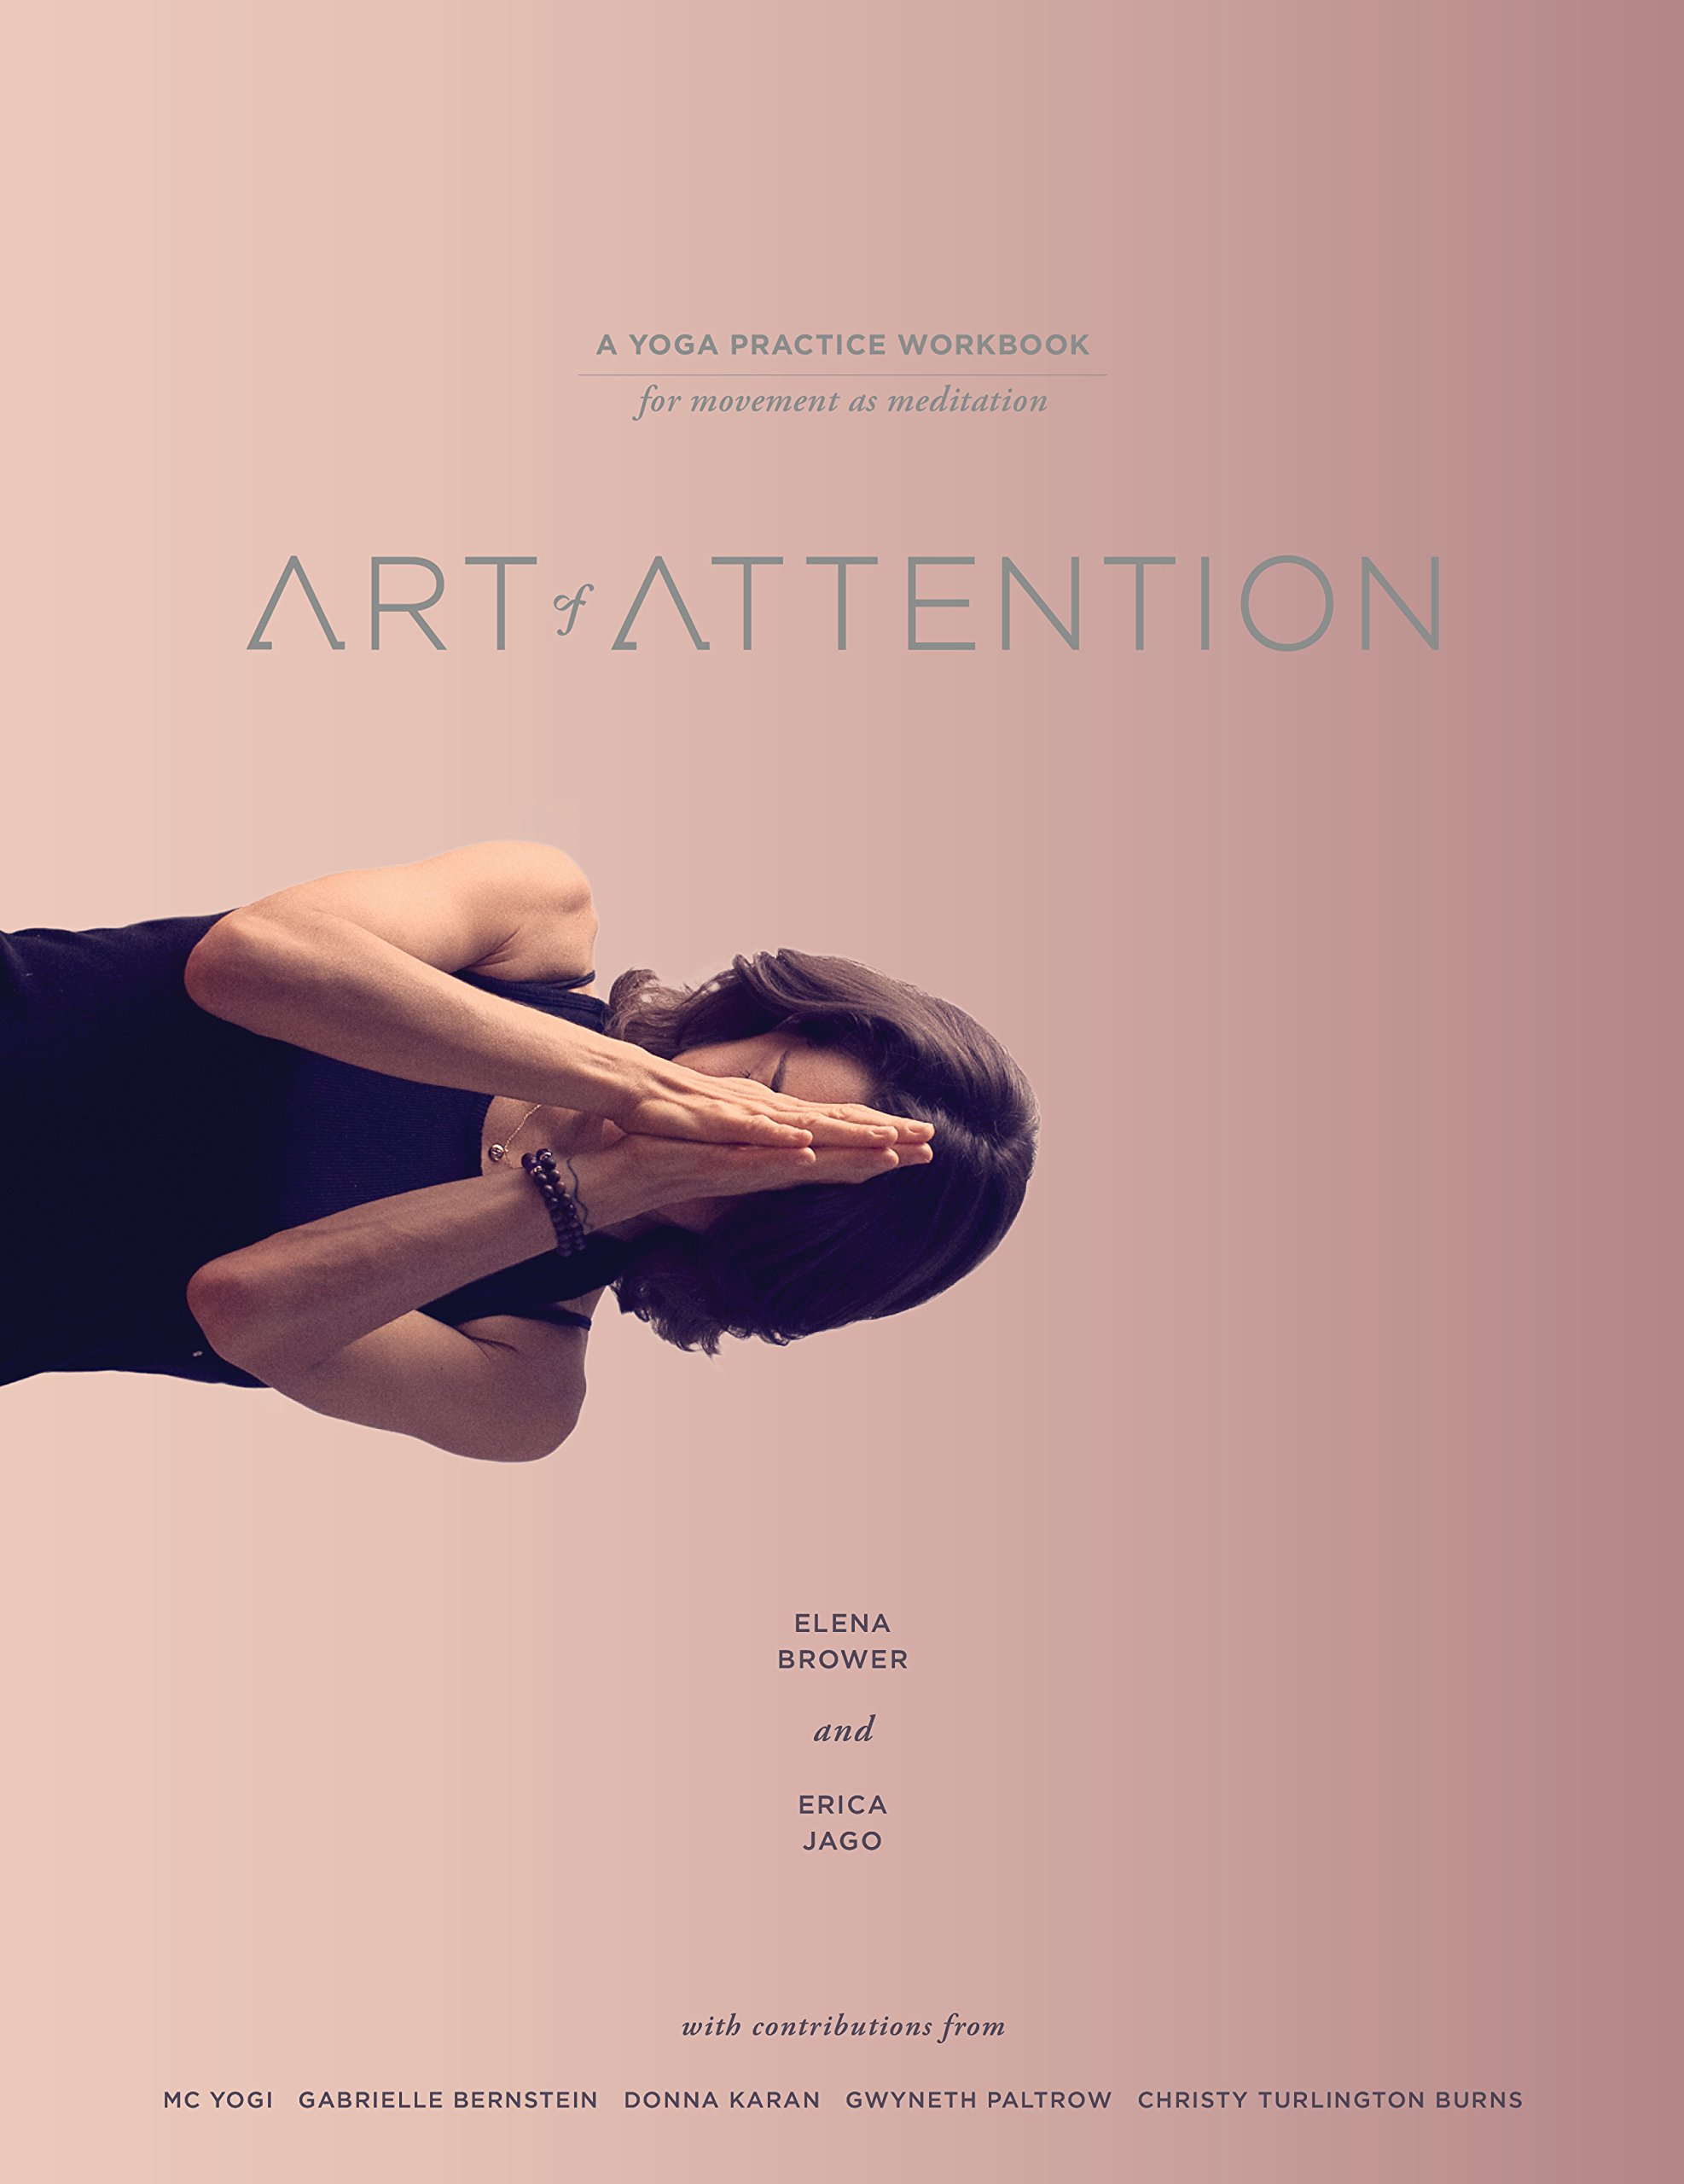 Art Attention Practice Workbook Meditation product image